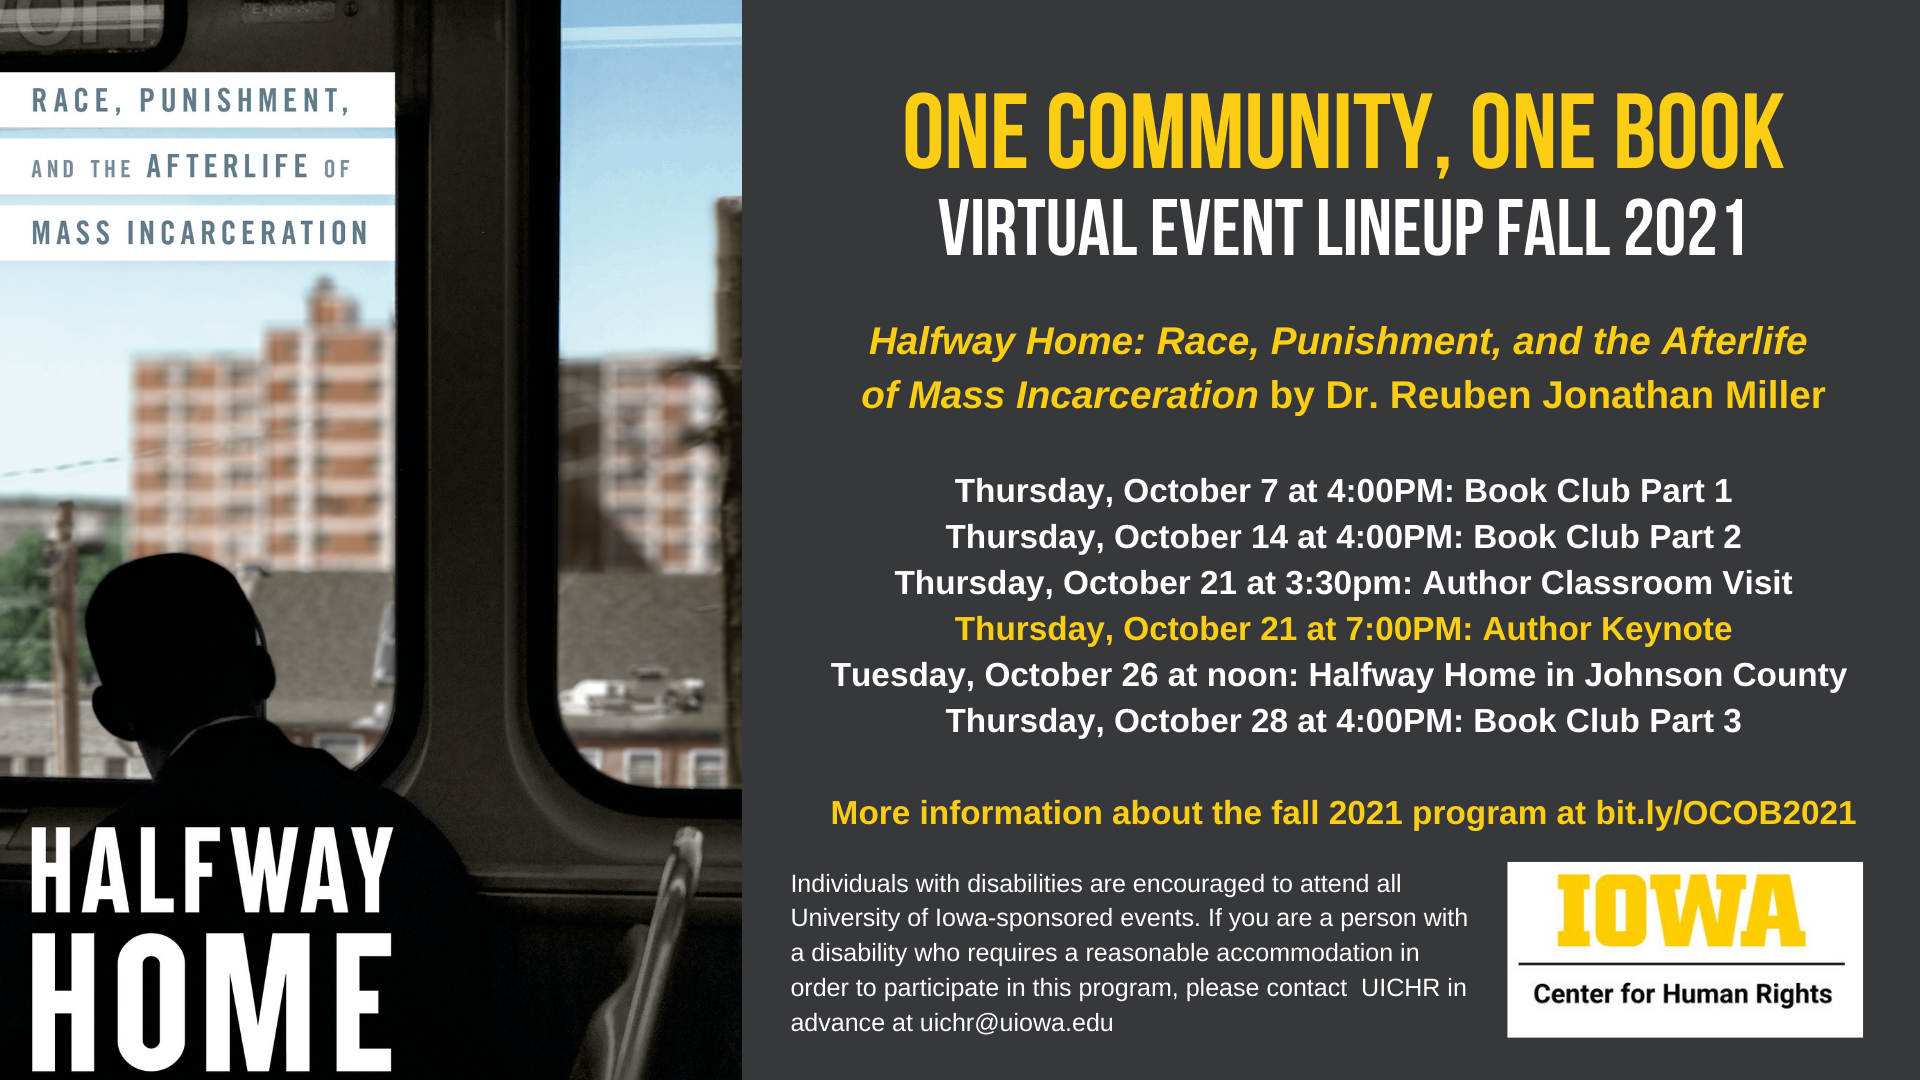 One Community, One Book    Virtual event lineup Fall 2021    Halfway Home: Race, Punishment, and the Afterlife    of Mass Incarceration by Dr. Reuben Jonathan Miller        Thursday, October 7 at 4:00PM: Book Club Part 1    Thursday, October 14 at 4:00PM: Book Club Part 2    Thursday, October 21 at 3:30pm: Author Classroom Visit    Thursday, October 21 at 7:00PM: Author Keynote    Tuesday, October 26 at noon: Halfway Home in Johnson County    Thursday, October 28 at 4:00PM: Book Club Part 3        More information about the fall 2021 program at bit.ly/OCOB2021